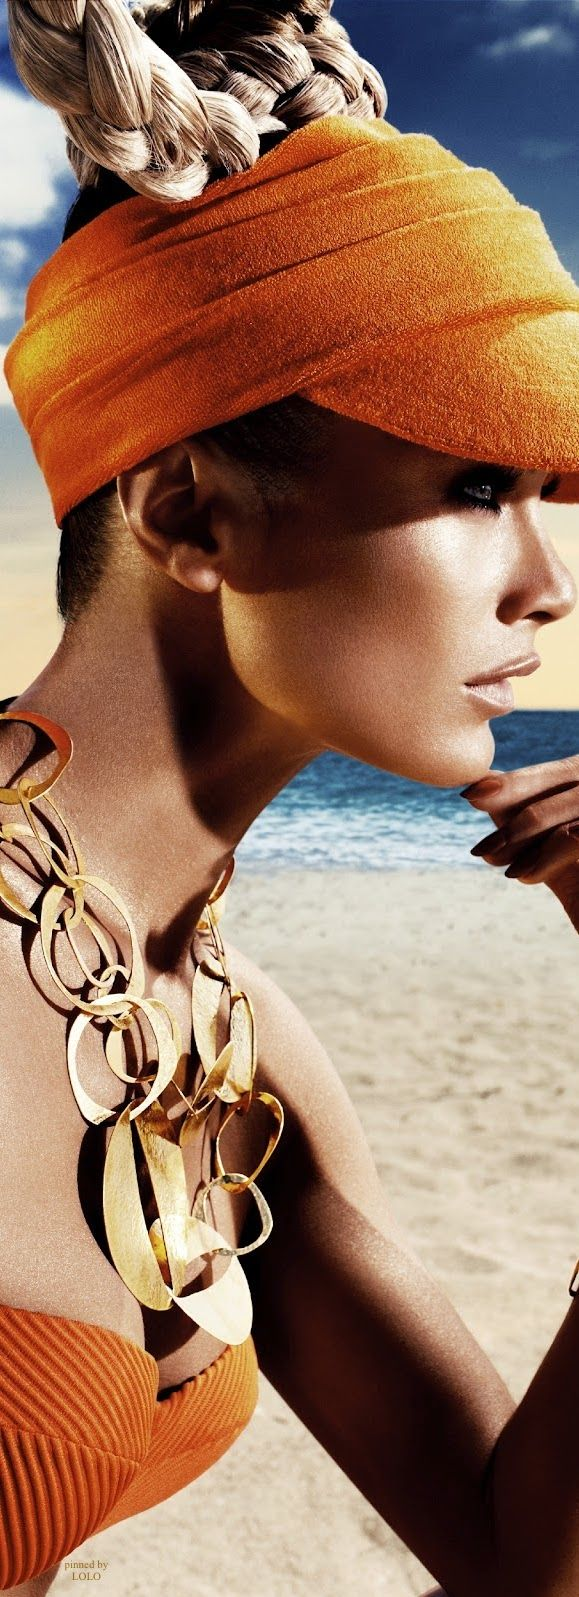 Carolyn Murphy by Alexi Lubomirski for Vogue Germany June 2012.jpg